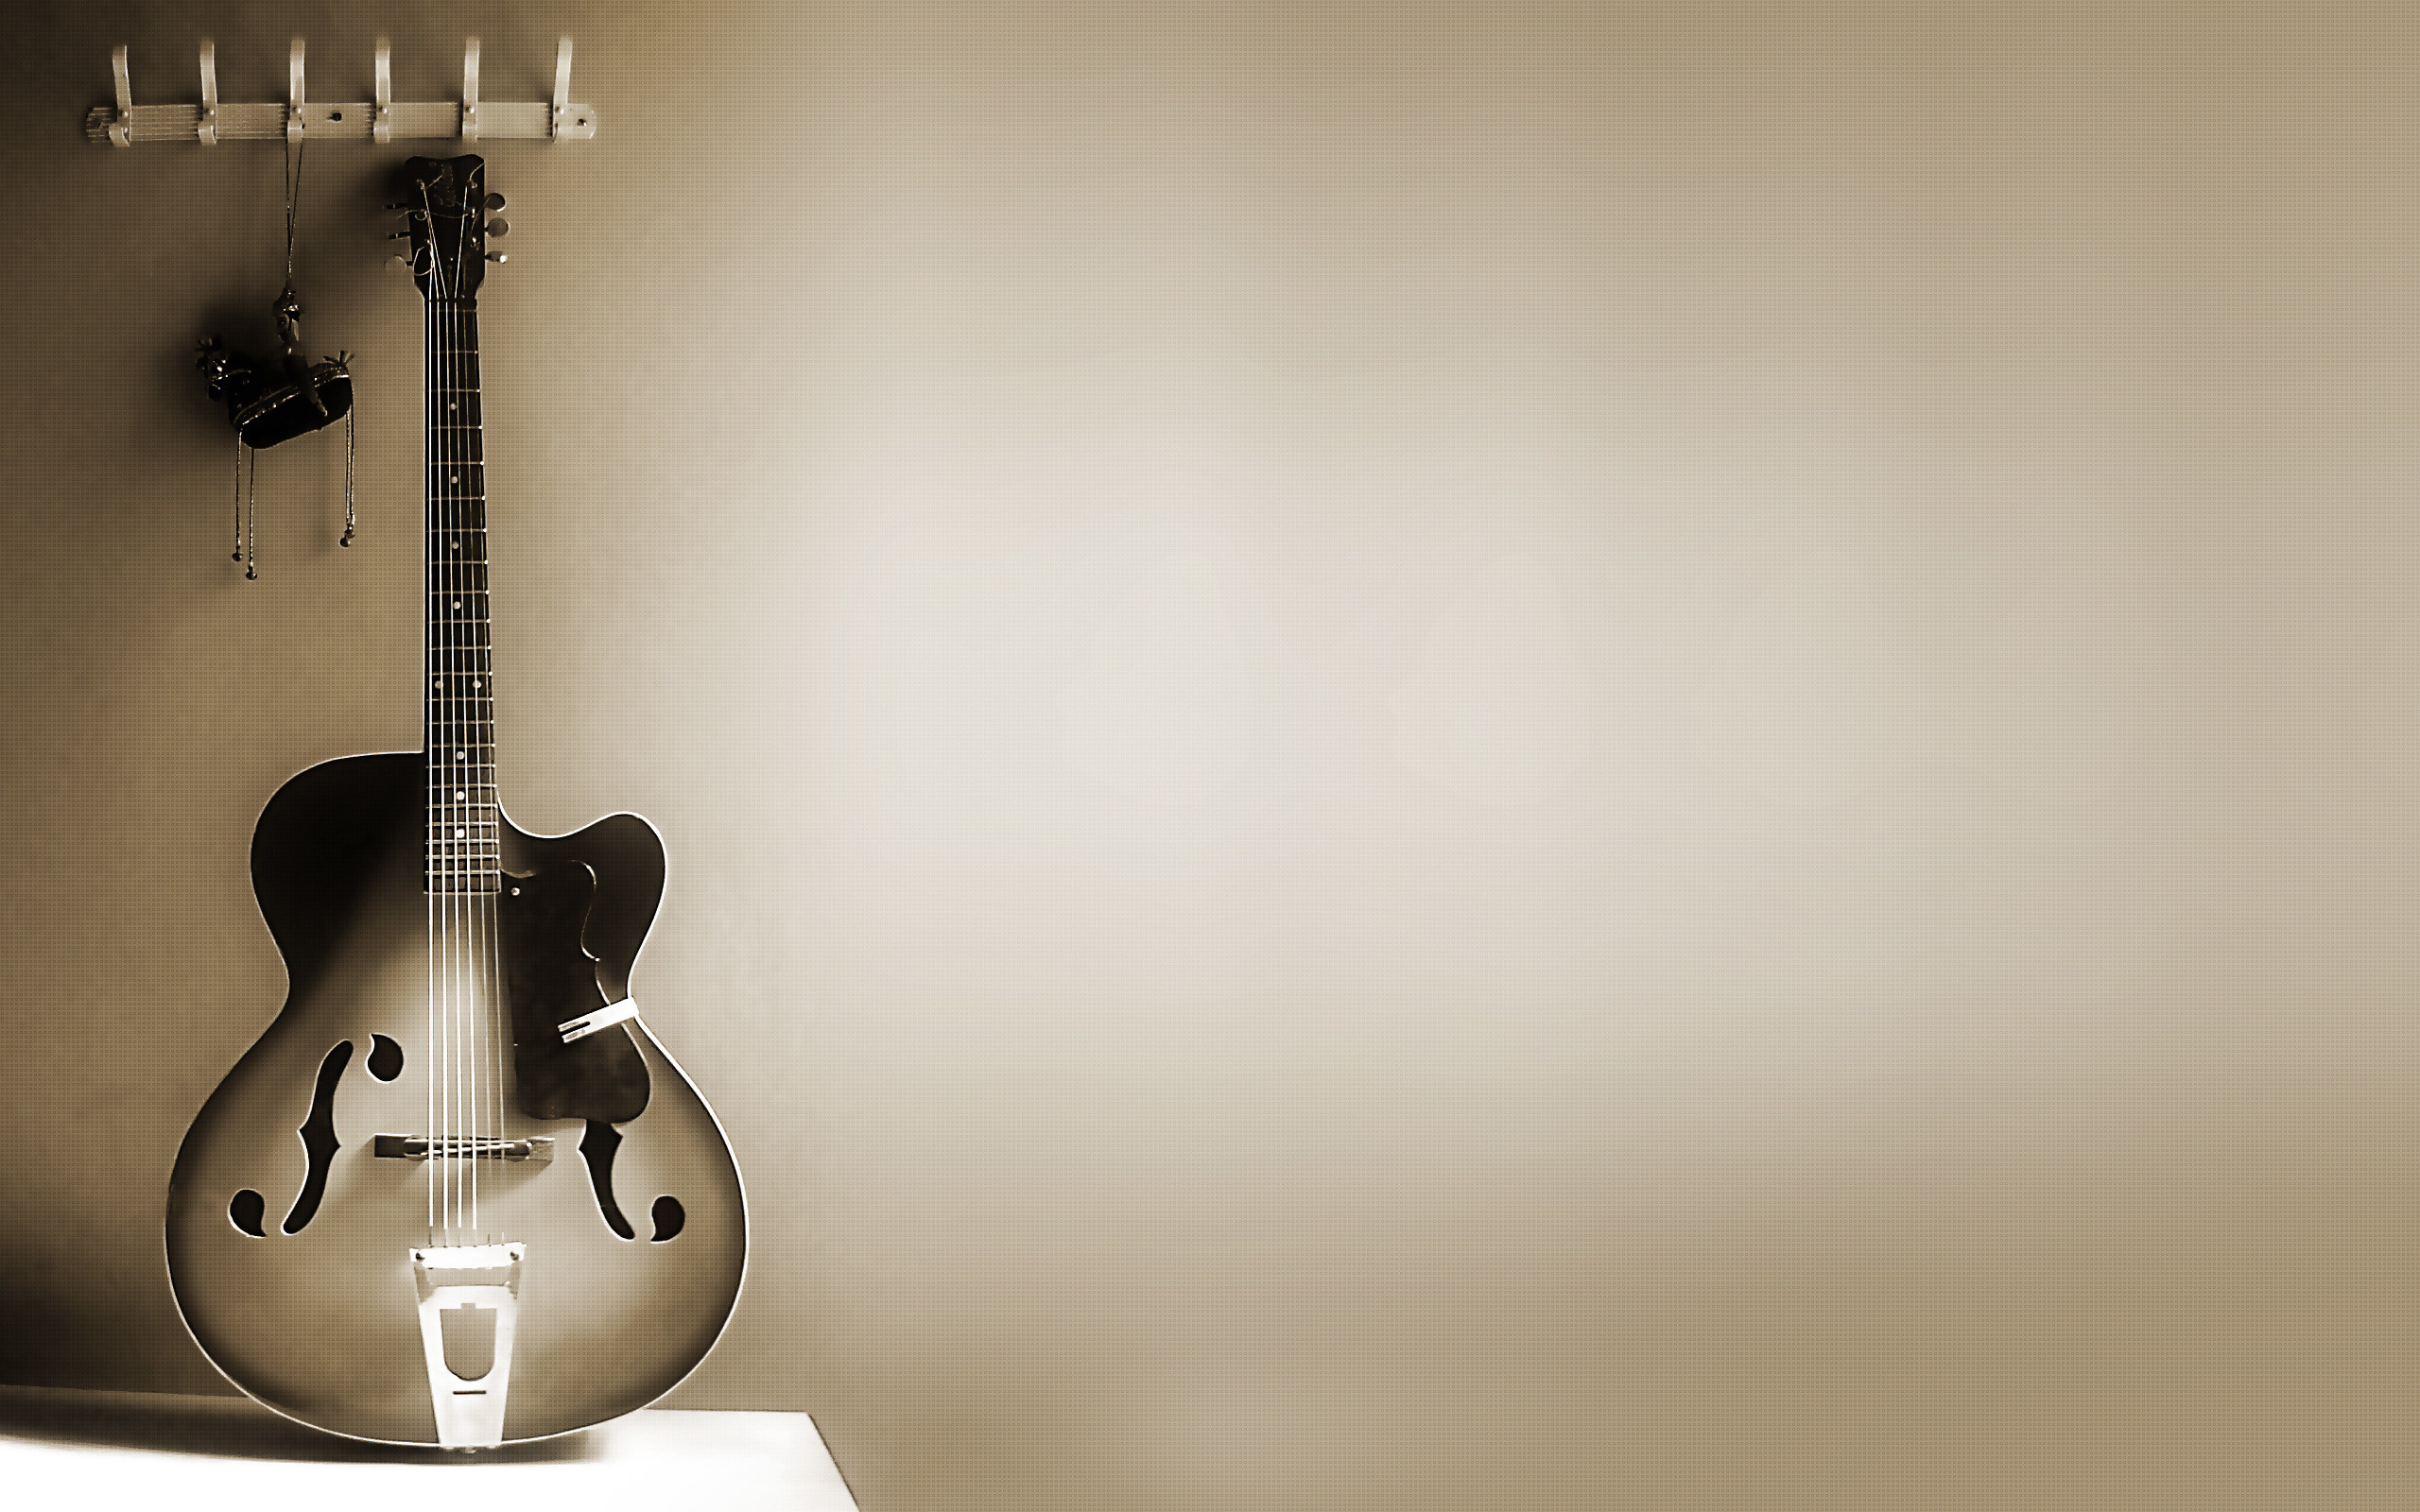 2560x1600 Free guitar wallpaper background